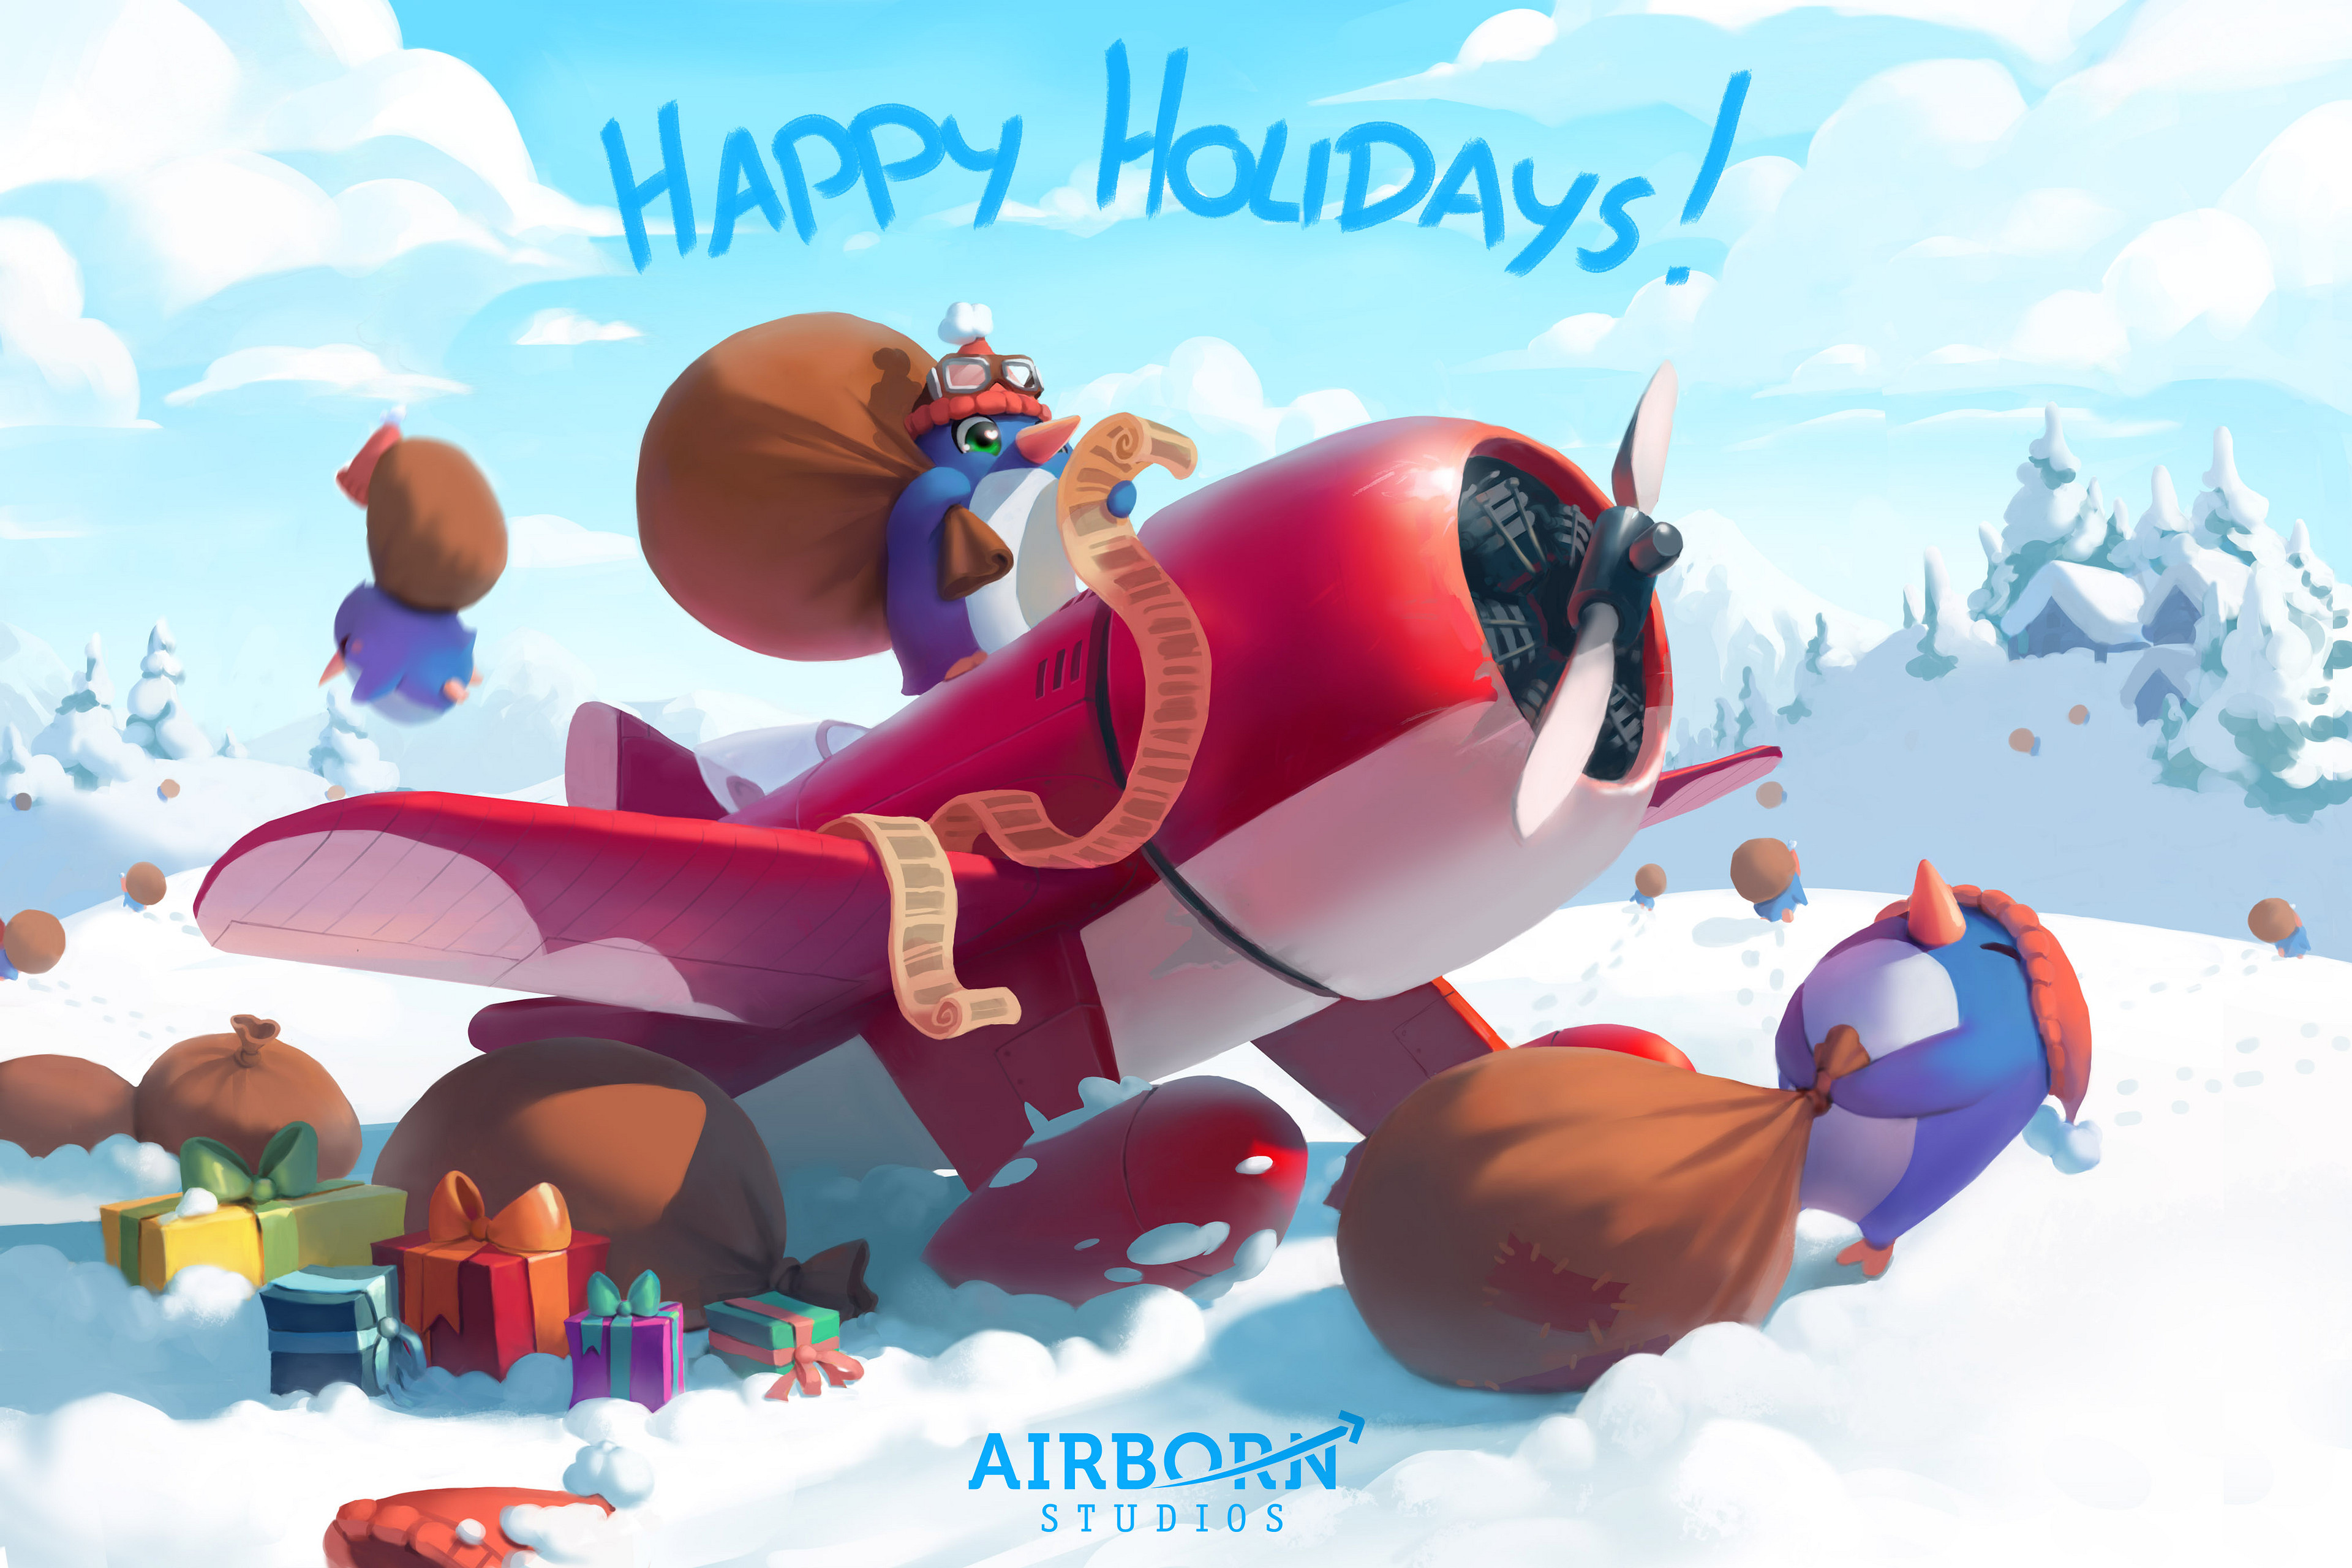 Happy holidays from Airborn Studios!